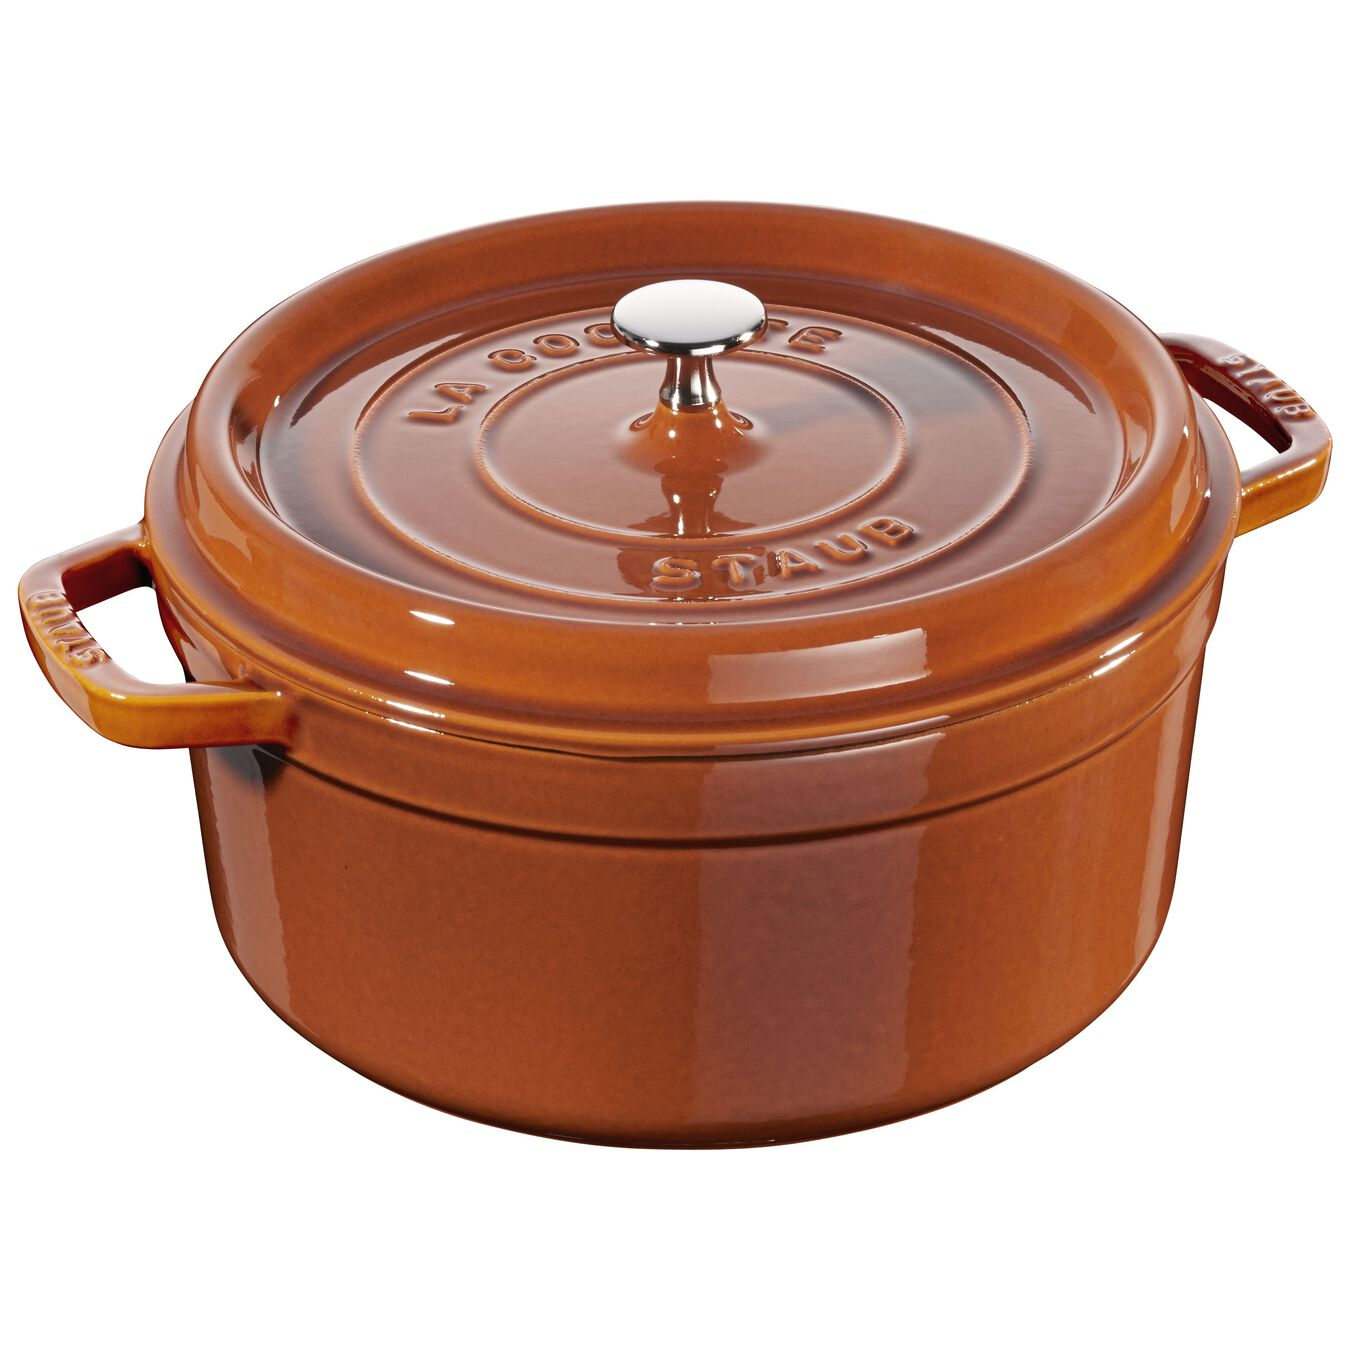 5.5-qt Round Cocotte - Burnt Orange,,large 1